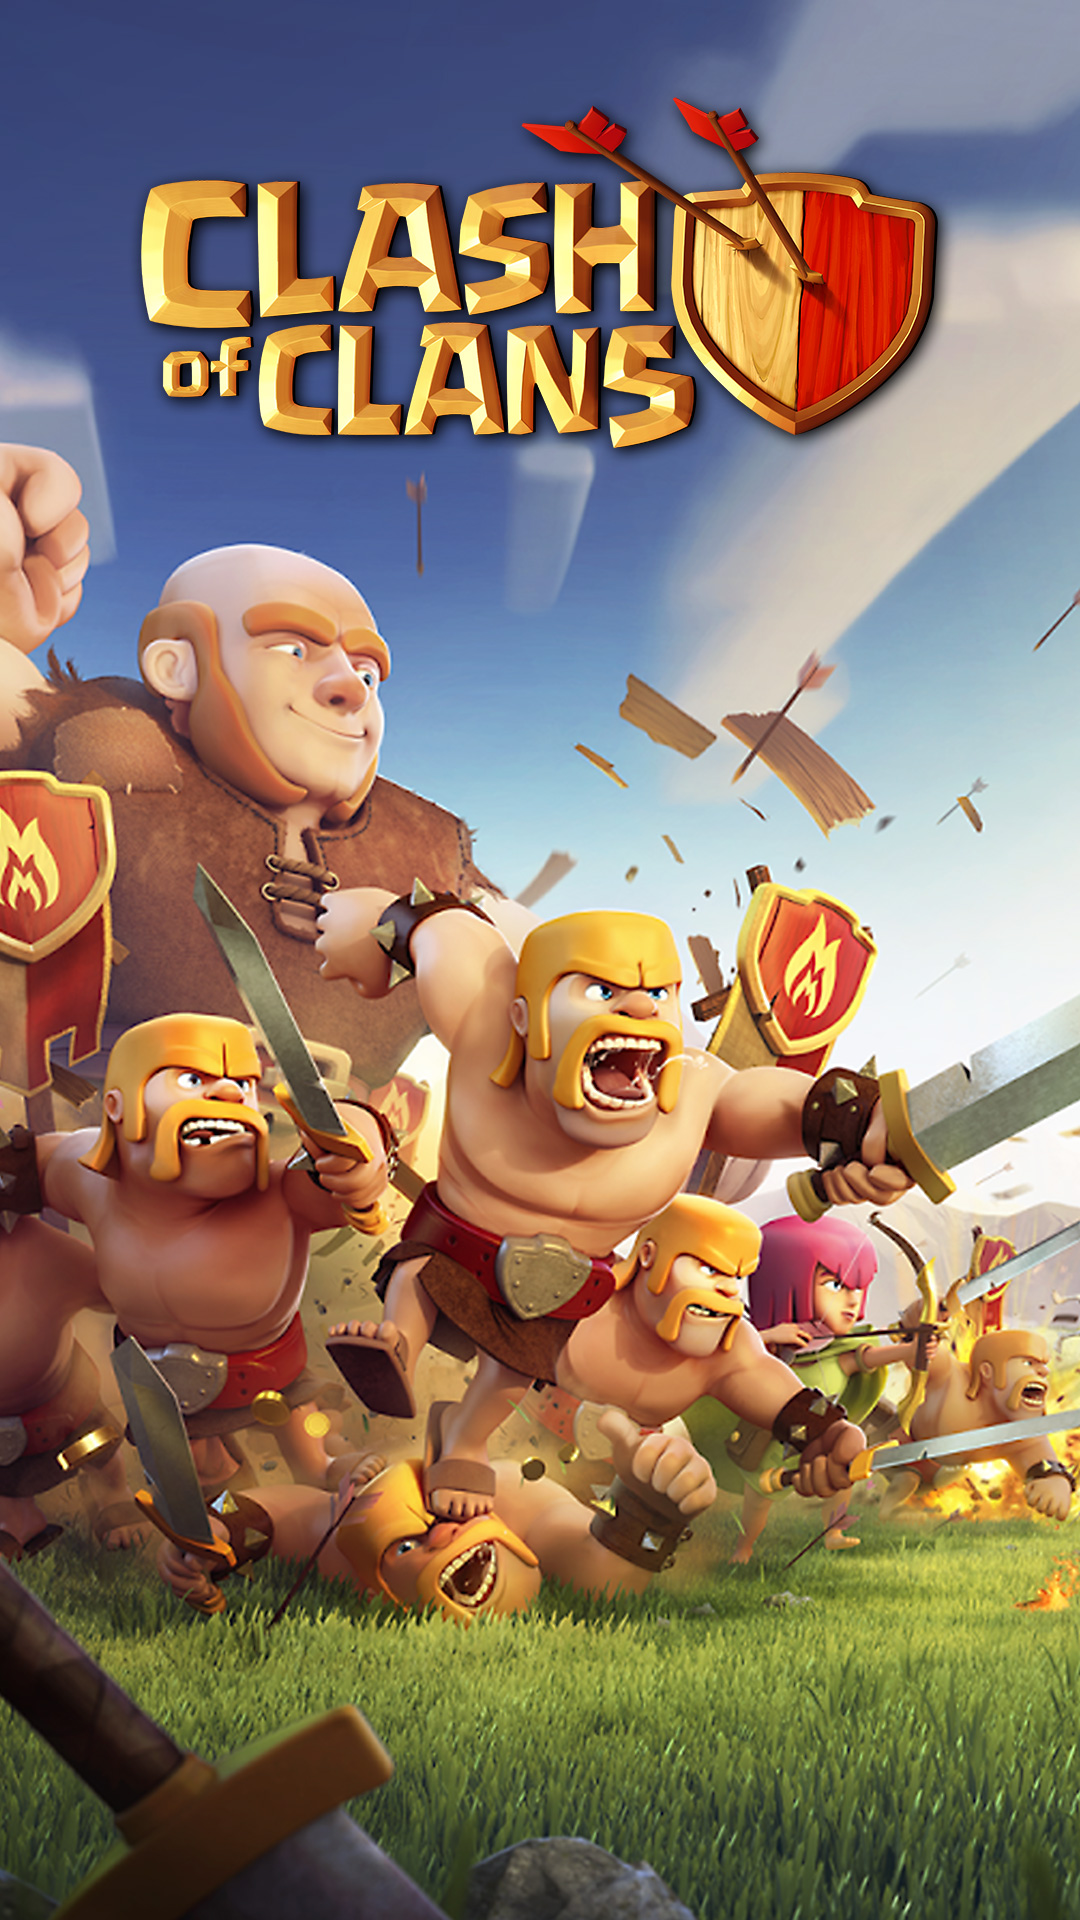 Clash Of Clans Samsung Galaxy S4 Sony Xperia Z Wallpaper